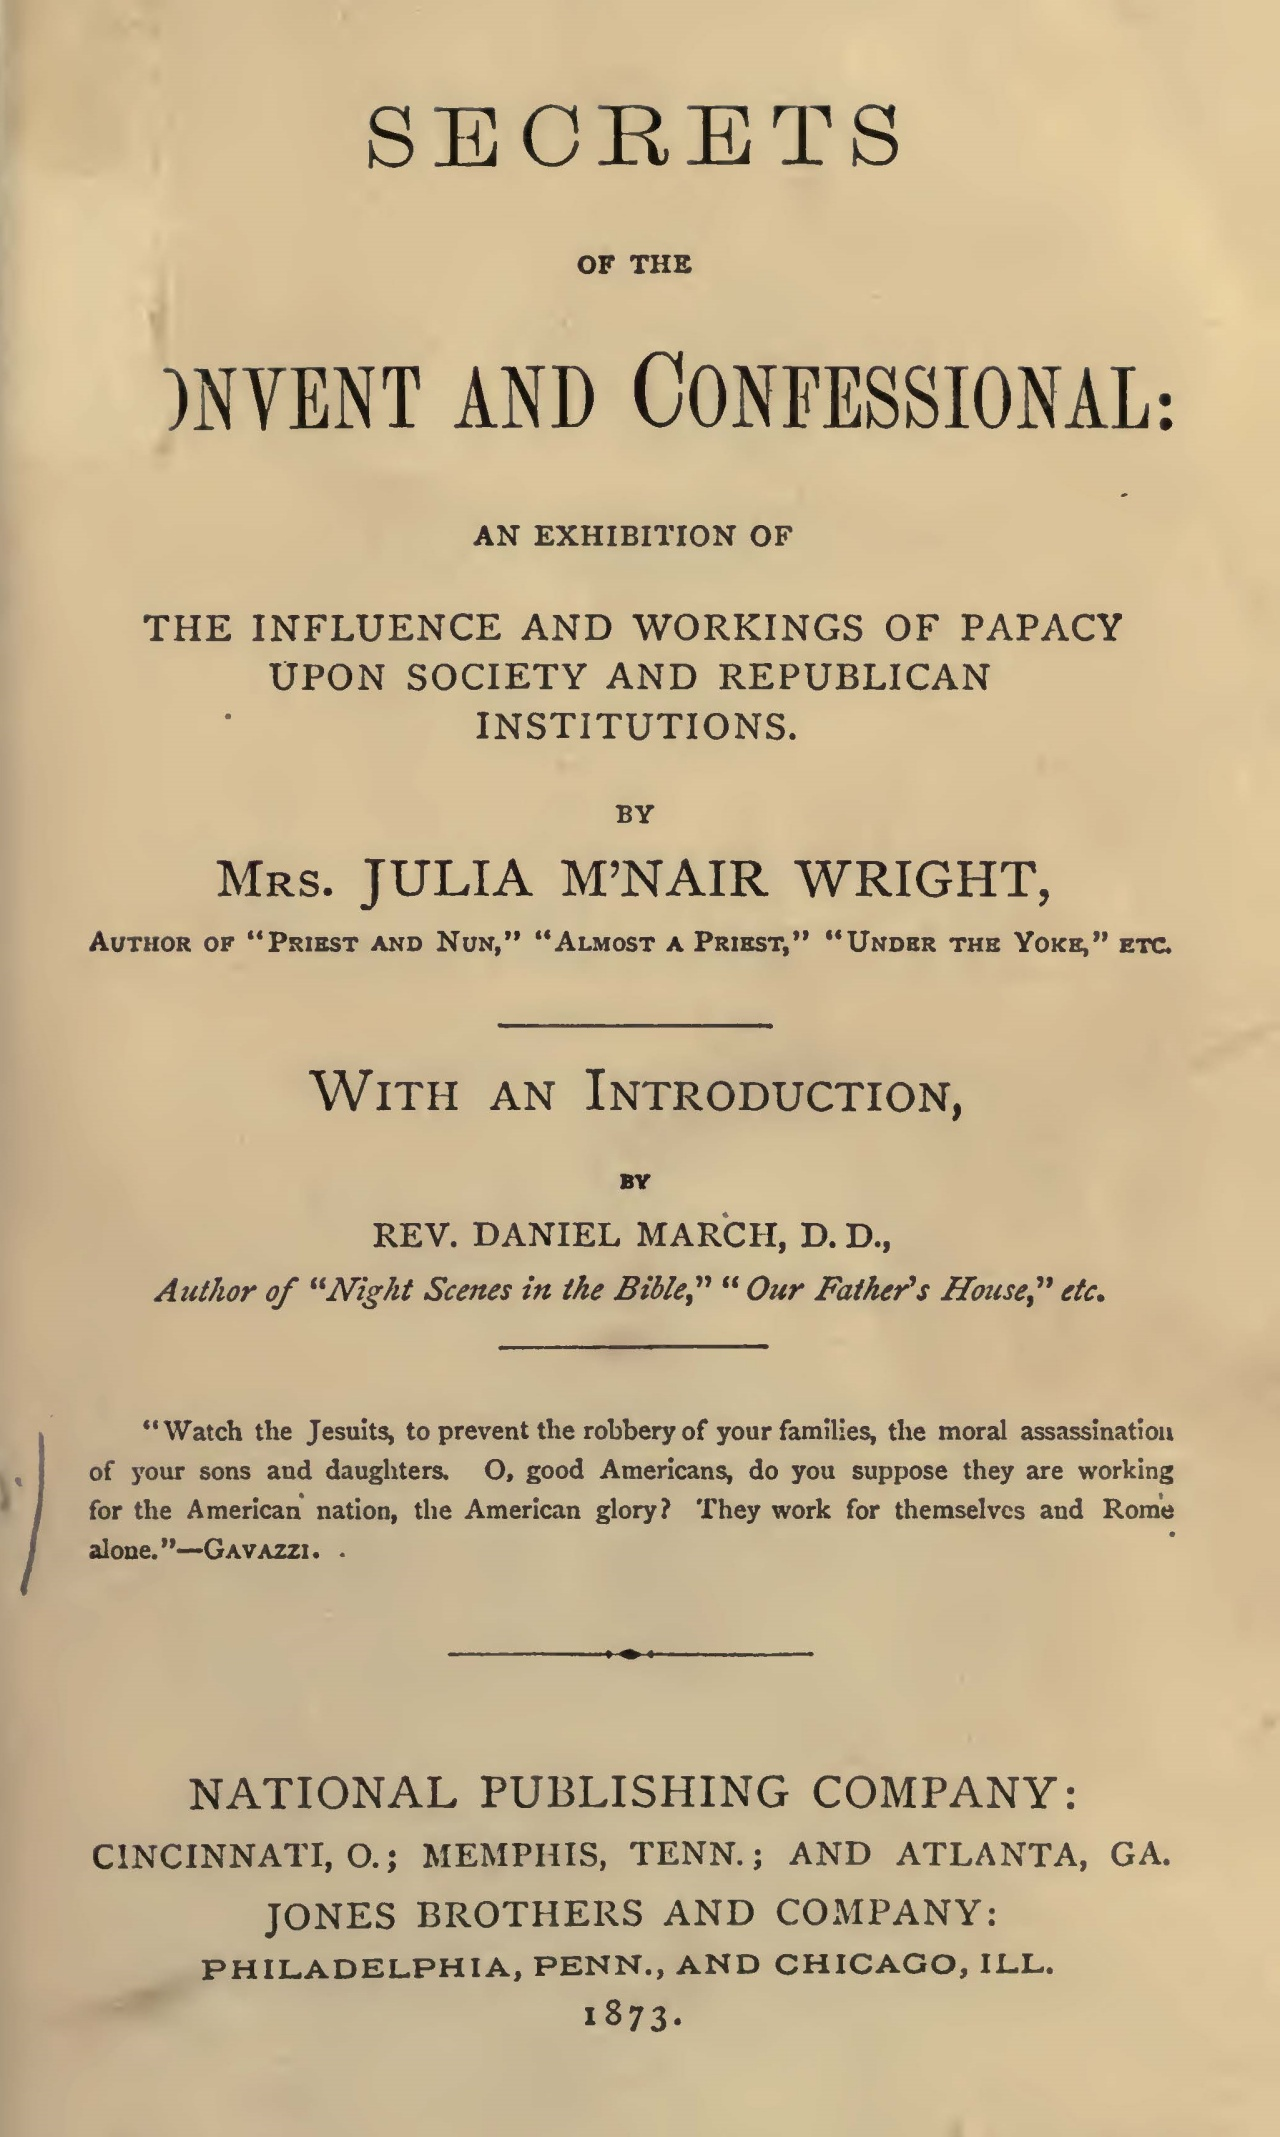 Wright, Julia McNair, Secrets of the Convent and Confessional Title Page.jpg